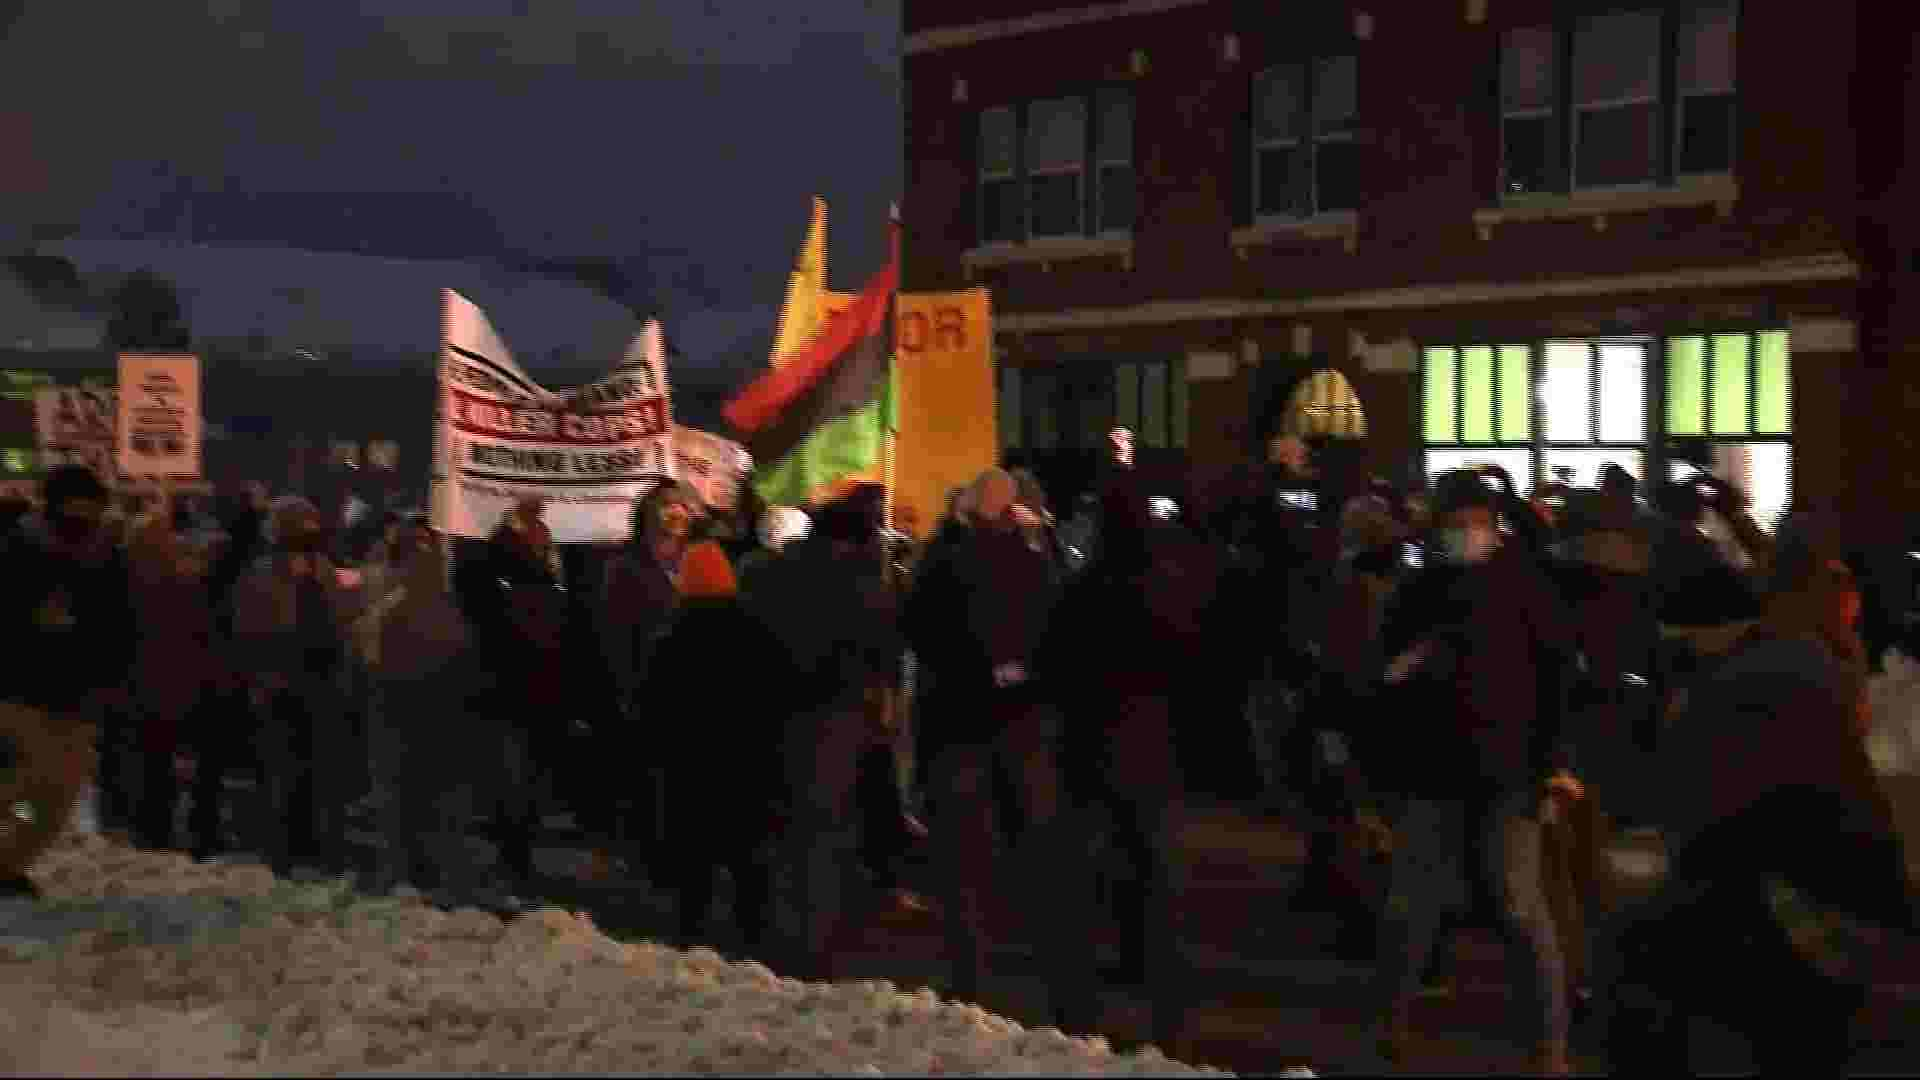 City prepares for protests as officer could face charges 1